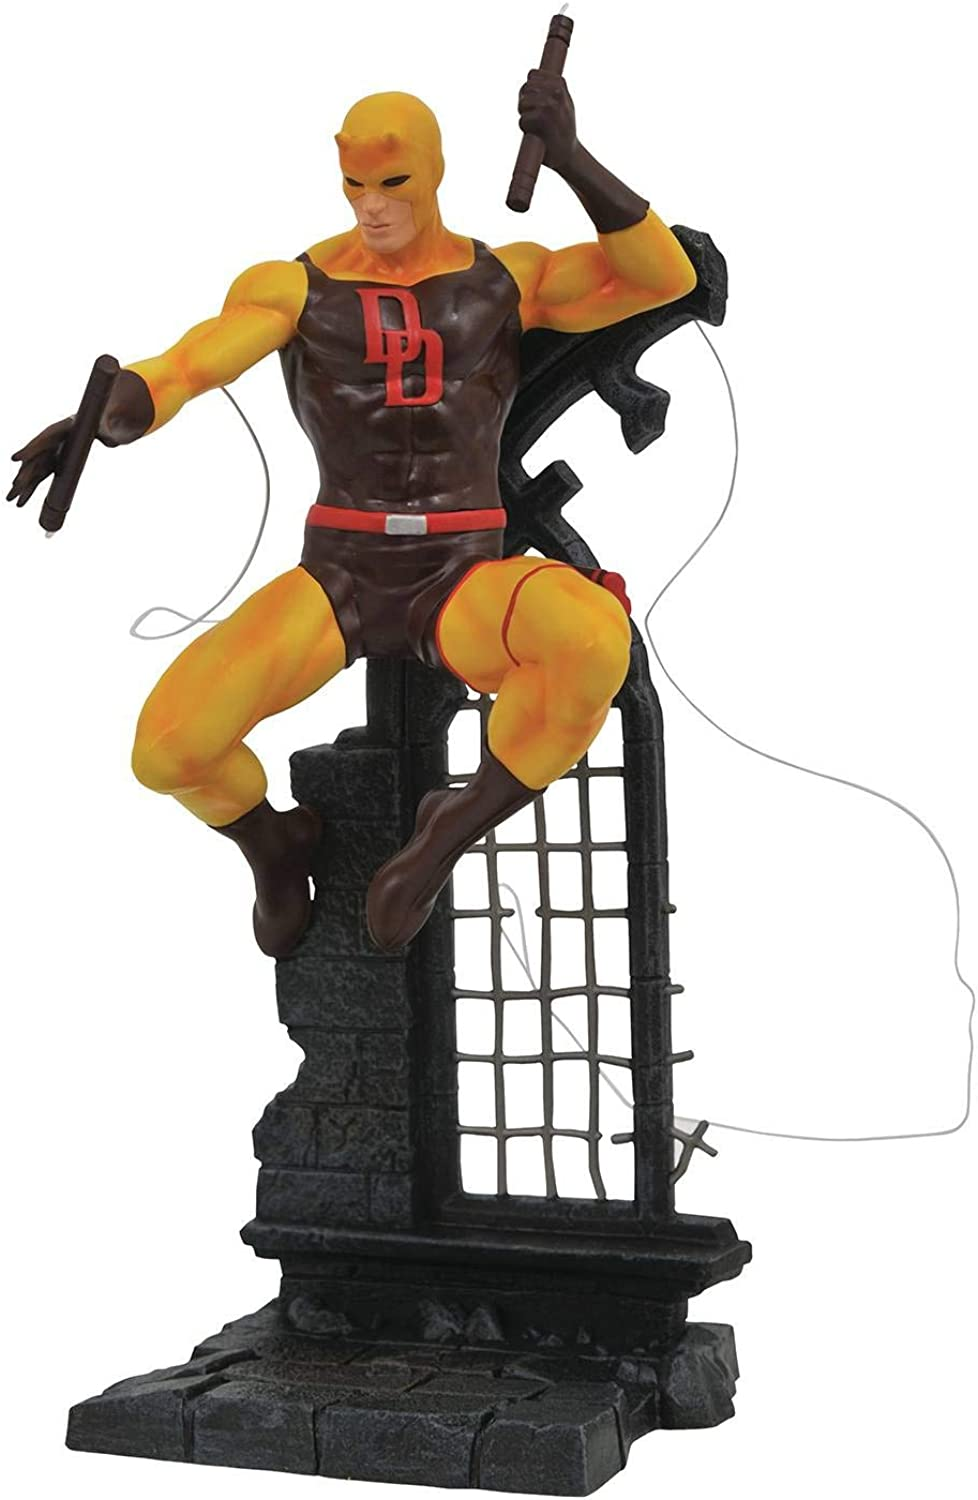 Marvel Diamond Gallery Yellow Daredevil Retailer Summit 2019 Exclusive Statue